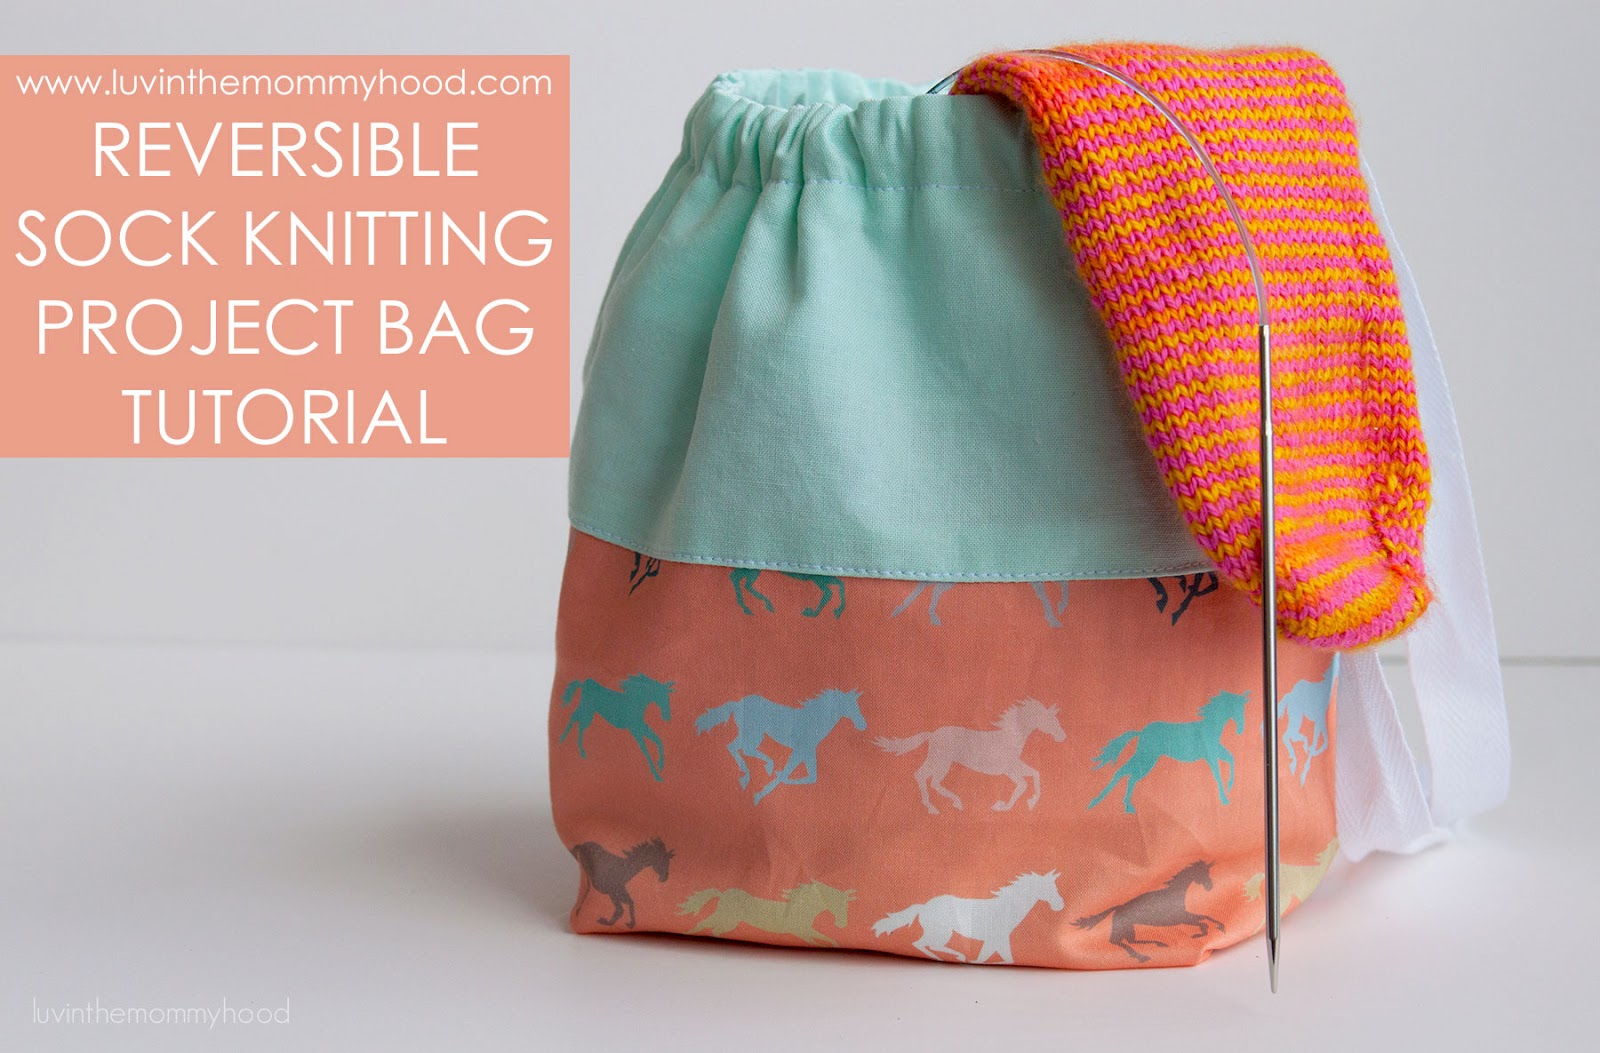 FREE TUTORIAL REVERSIBLE SOCK KNITTING PROJECT BAG   VERY SHANNON